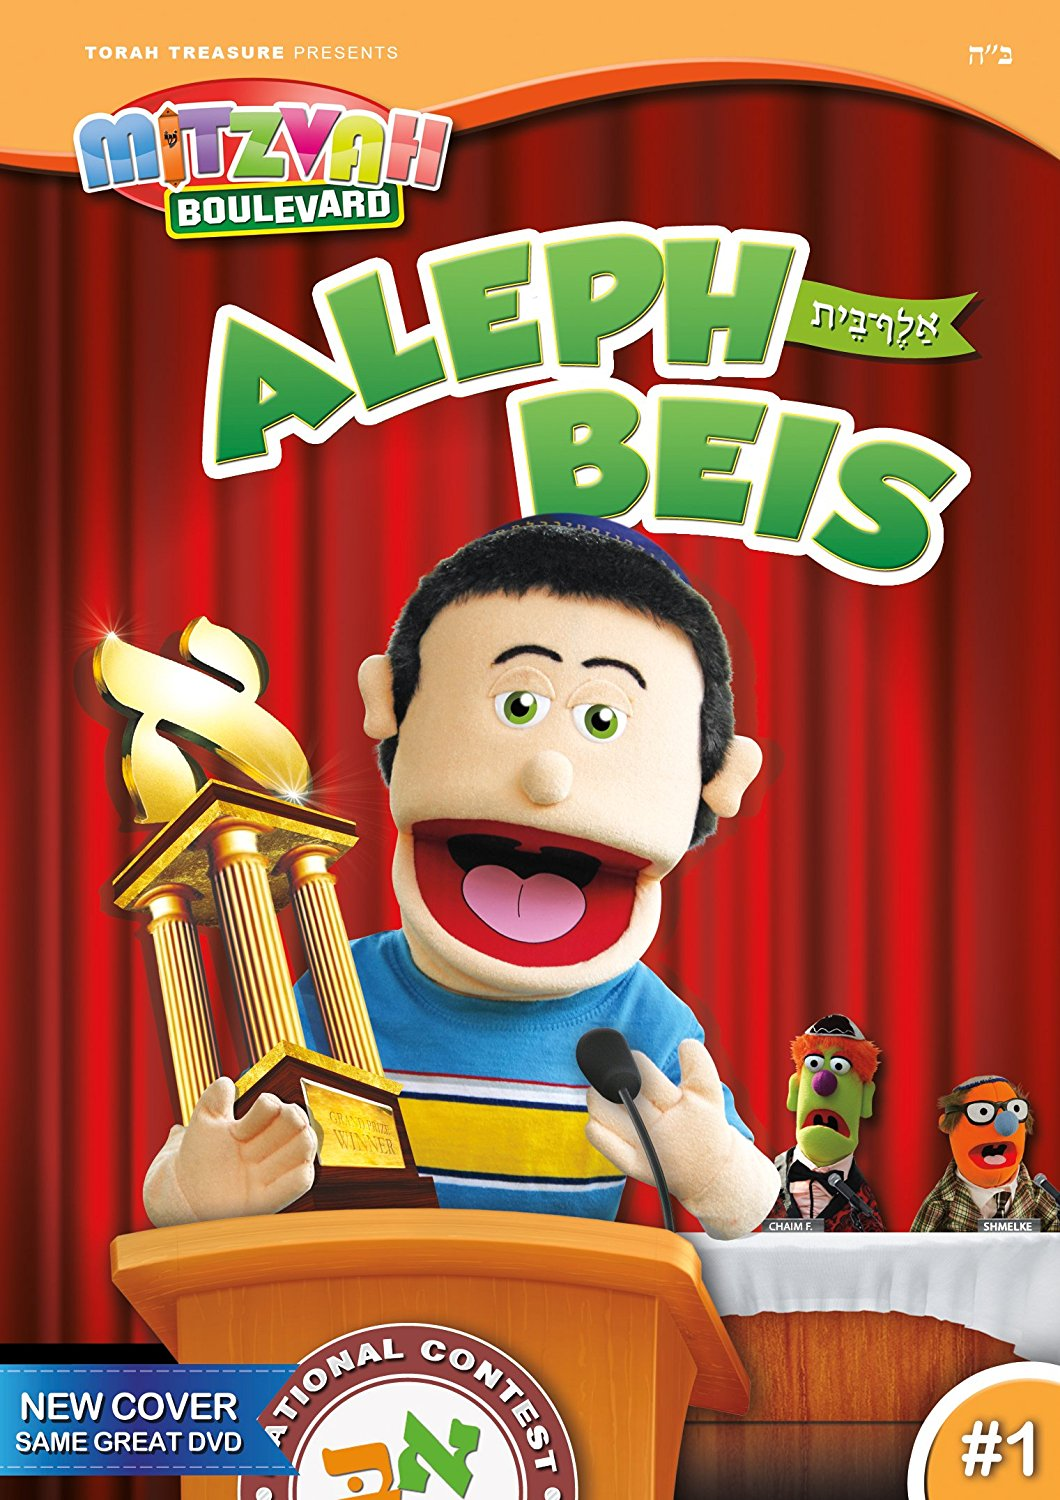 Mitzvah Boulevard Volume 1 / Eli Learns His Aleph Beis DVD